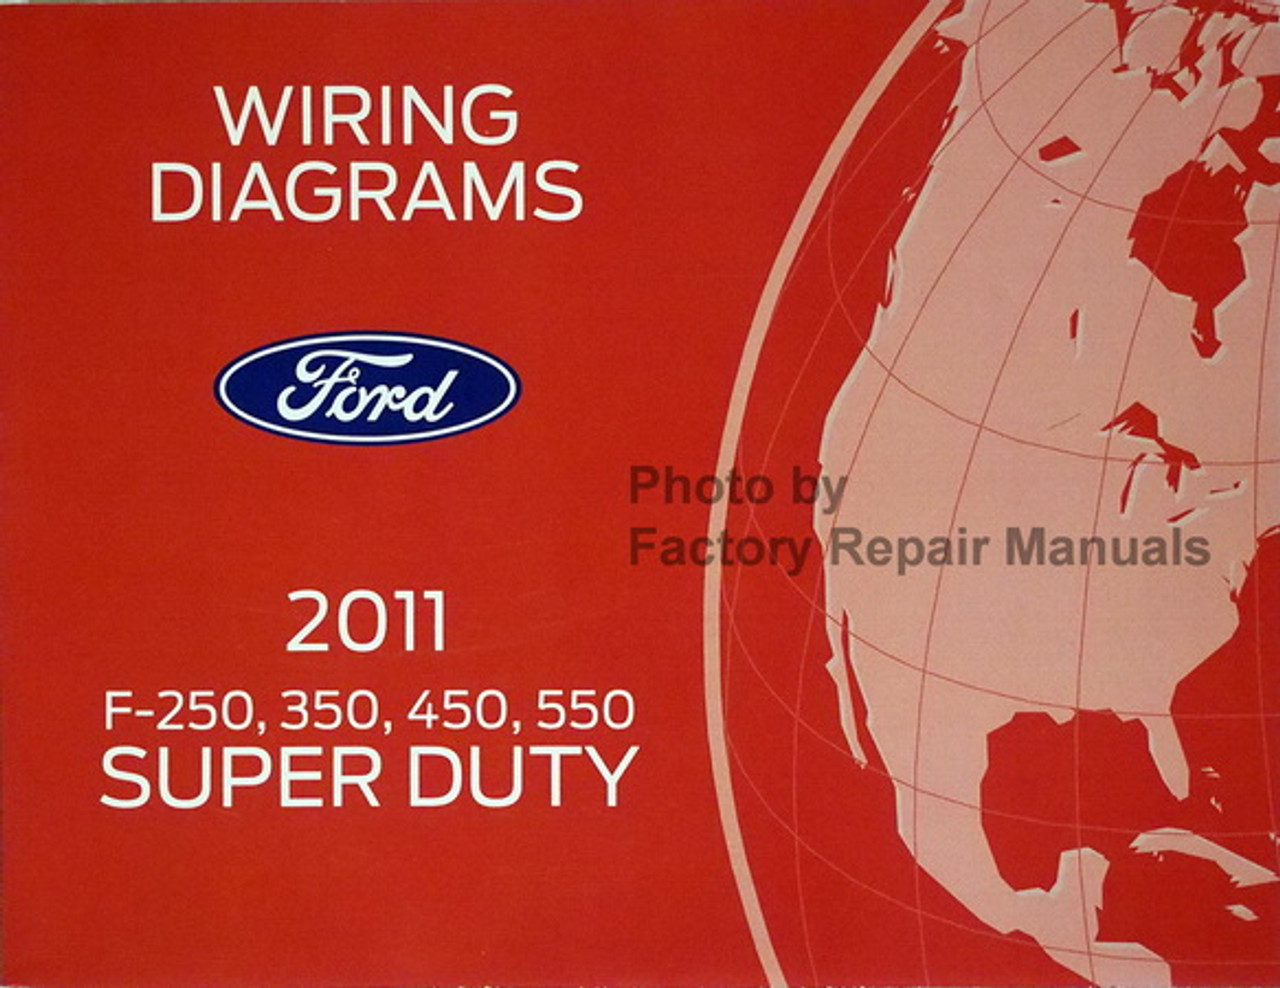 Ford F550 Wiring Diagram